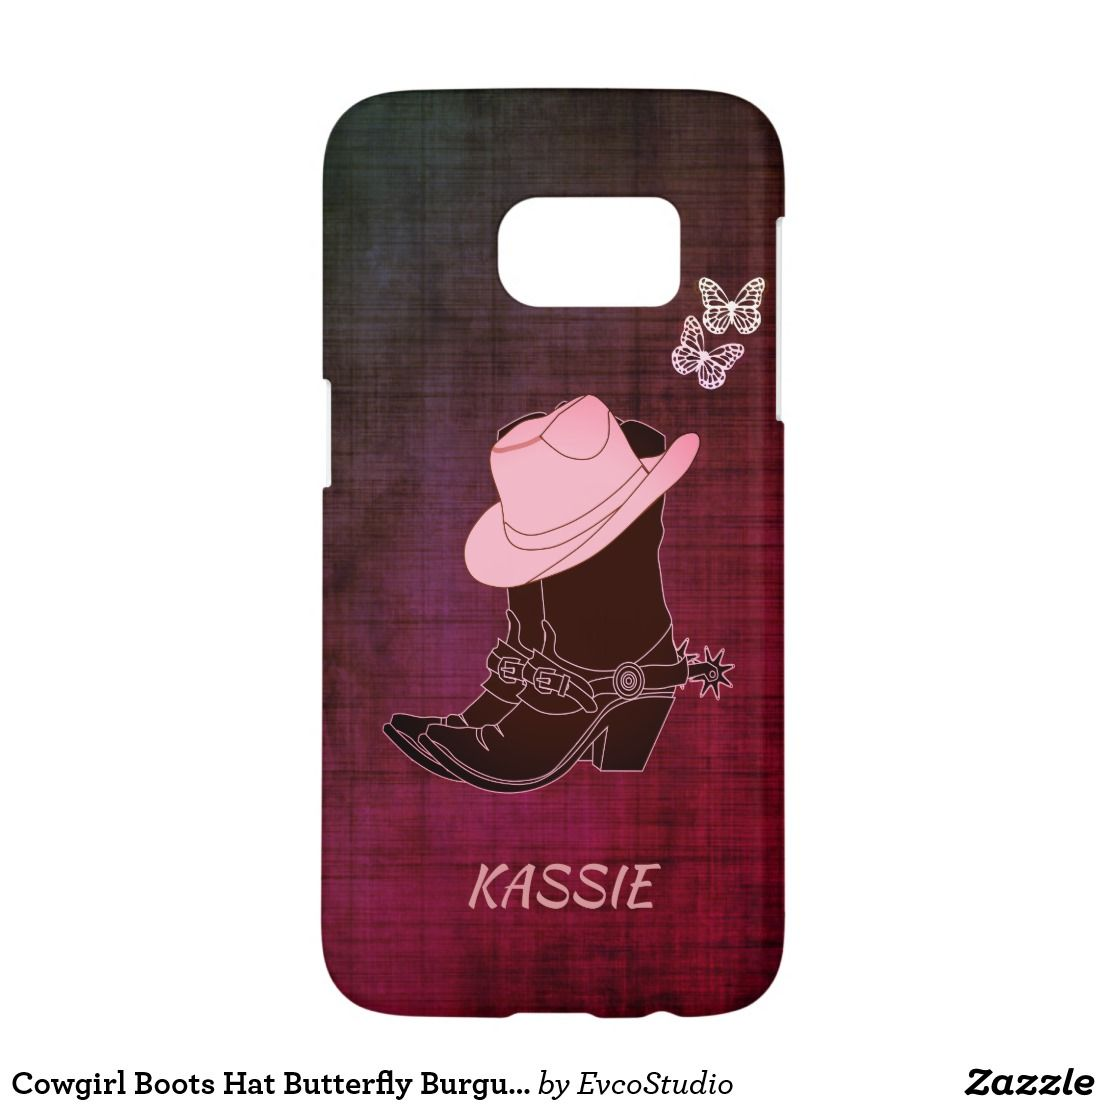 Cowgirl Boots Hat Butterfly Burgundy Personalized Case Mate Samsung Galaxy Case Samsung Galaxy S7 Cases Cowgirl Boots Samsung Galaxy Case